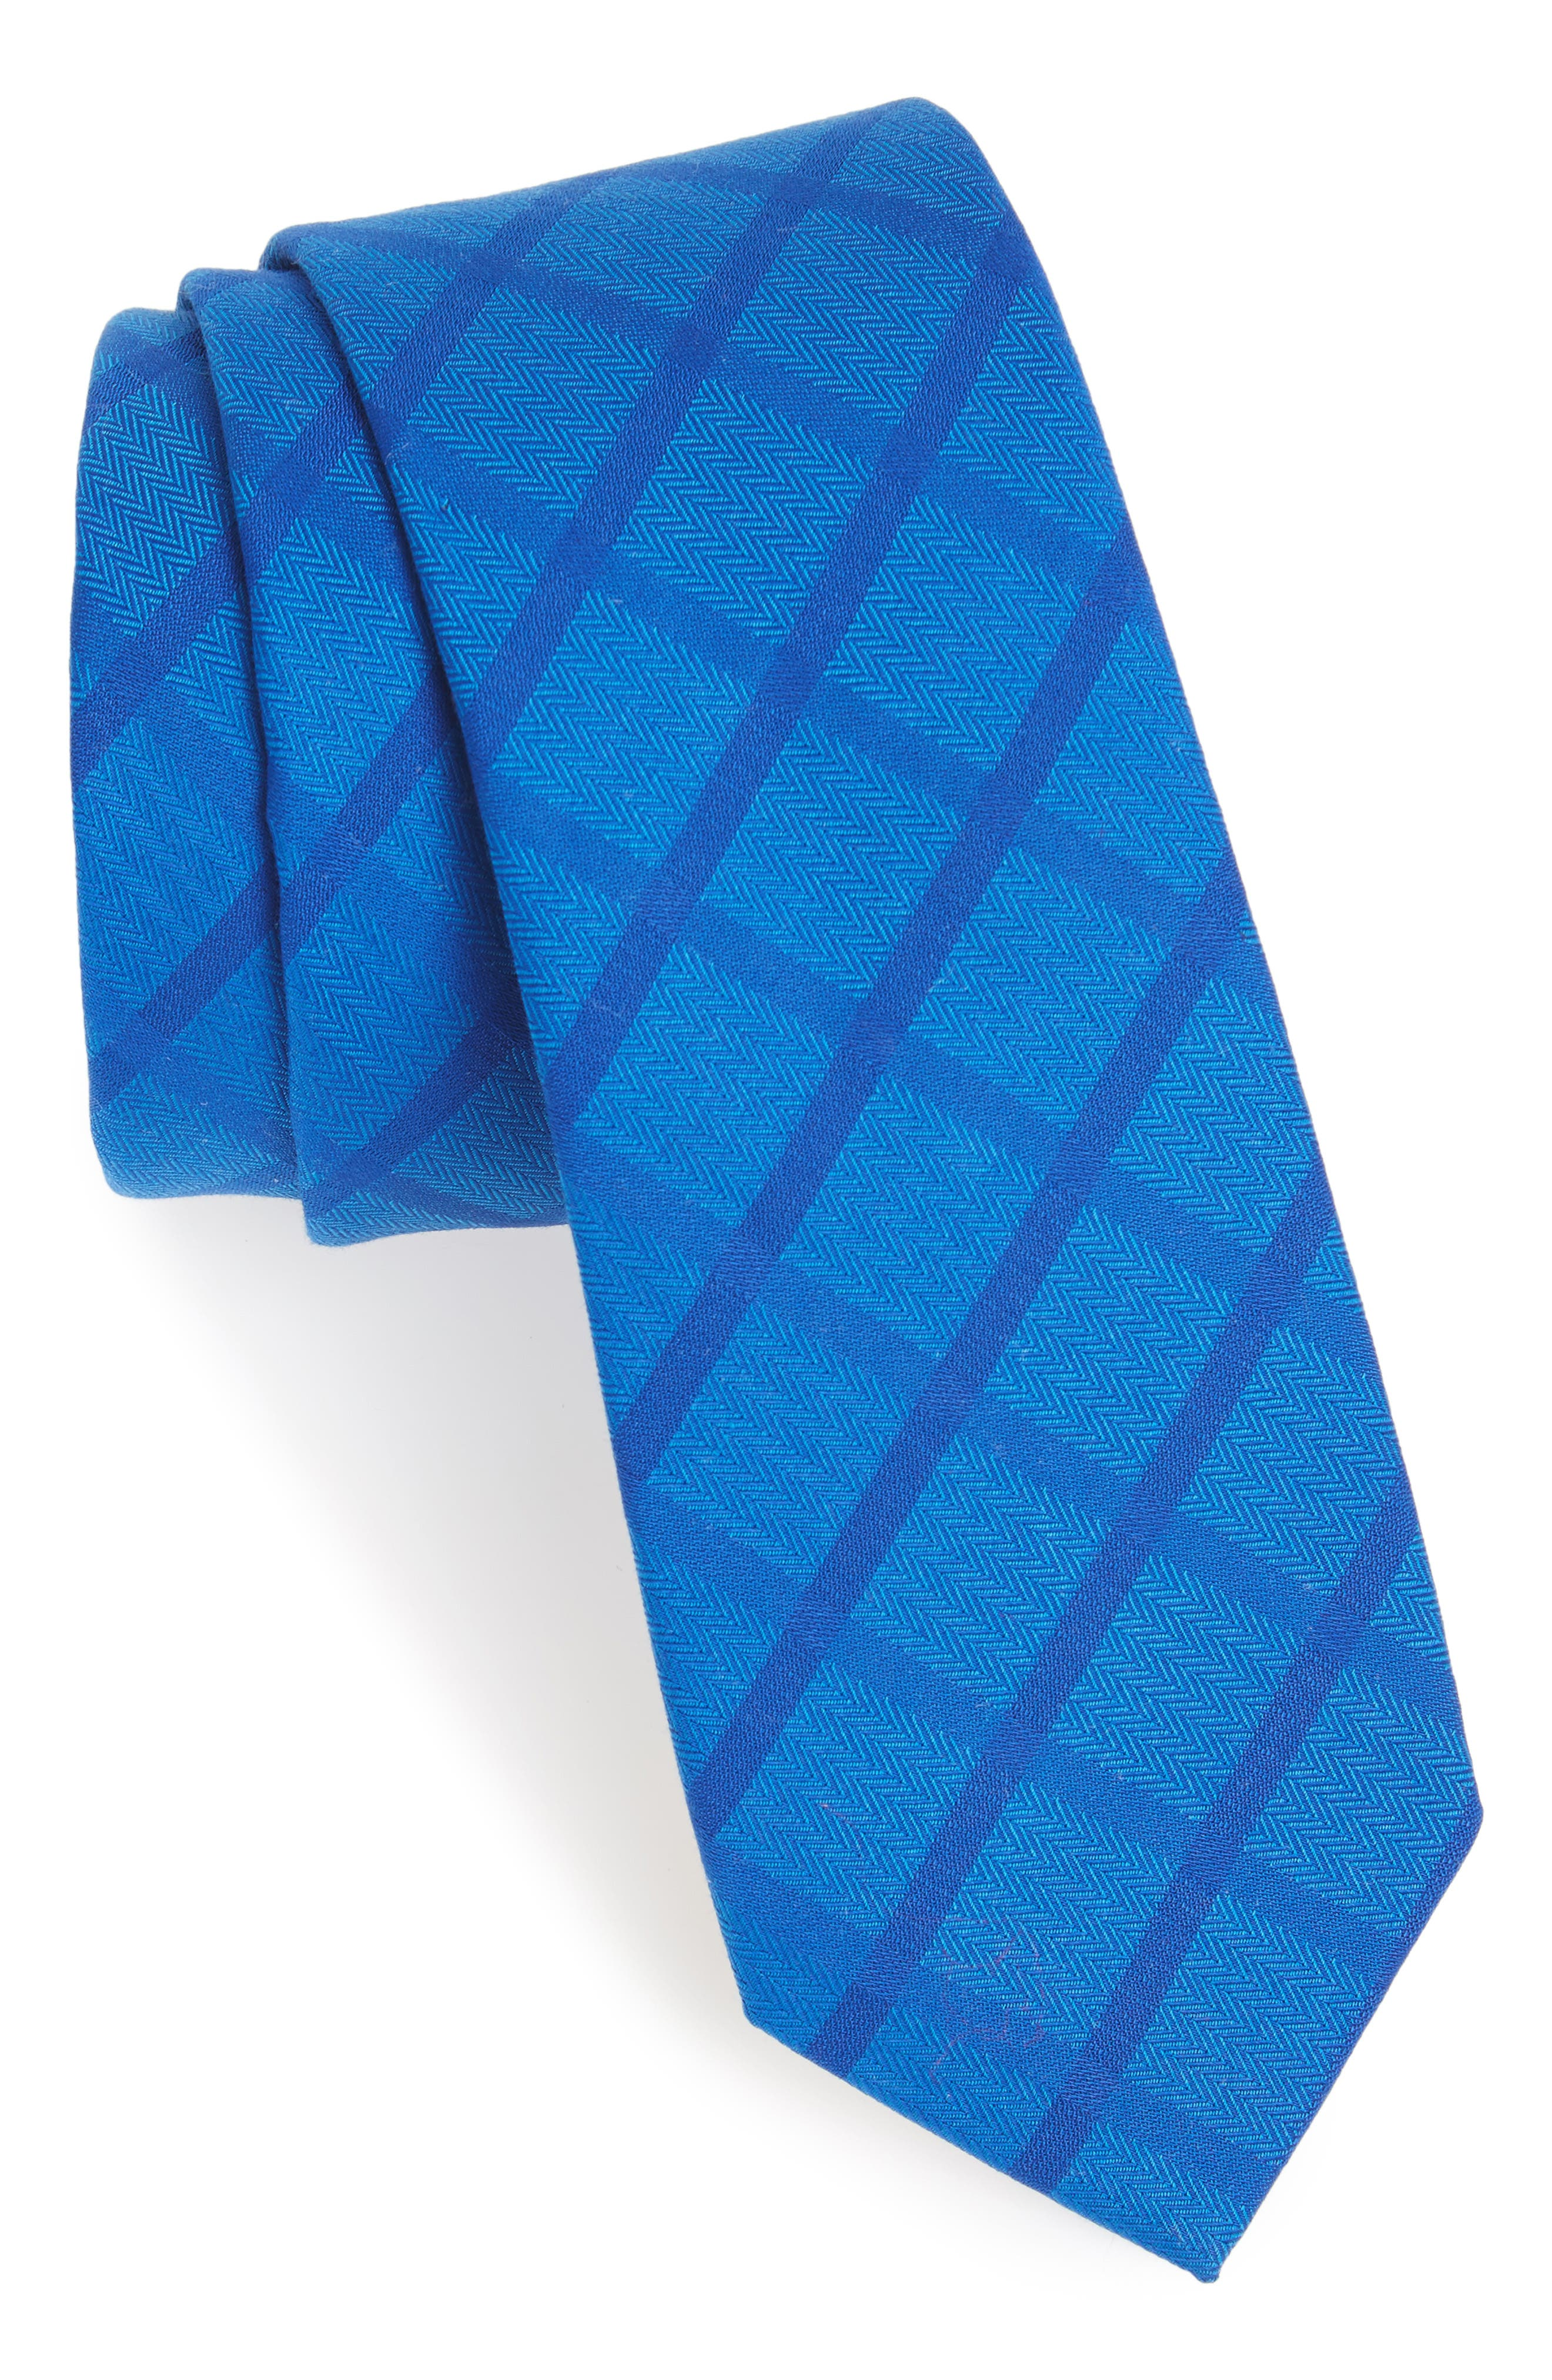 Madison Grid Tie,                             Main thumbnail 1, color,